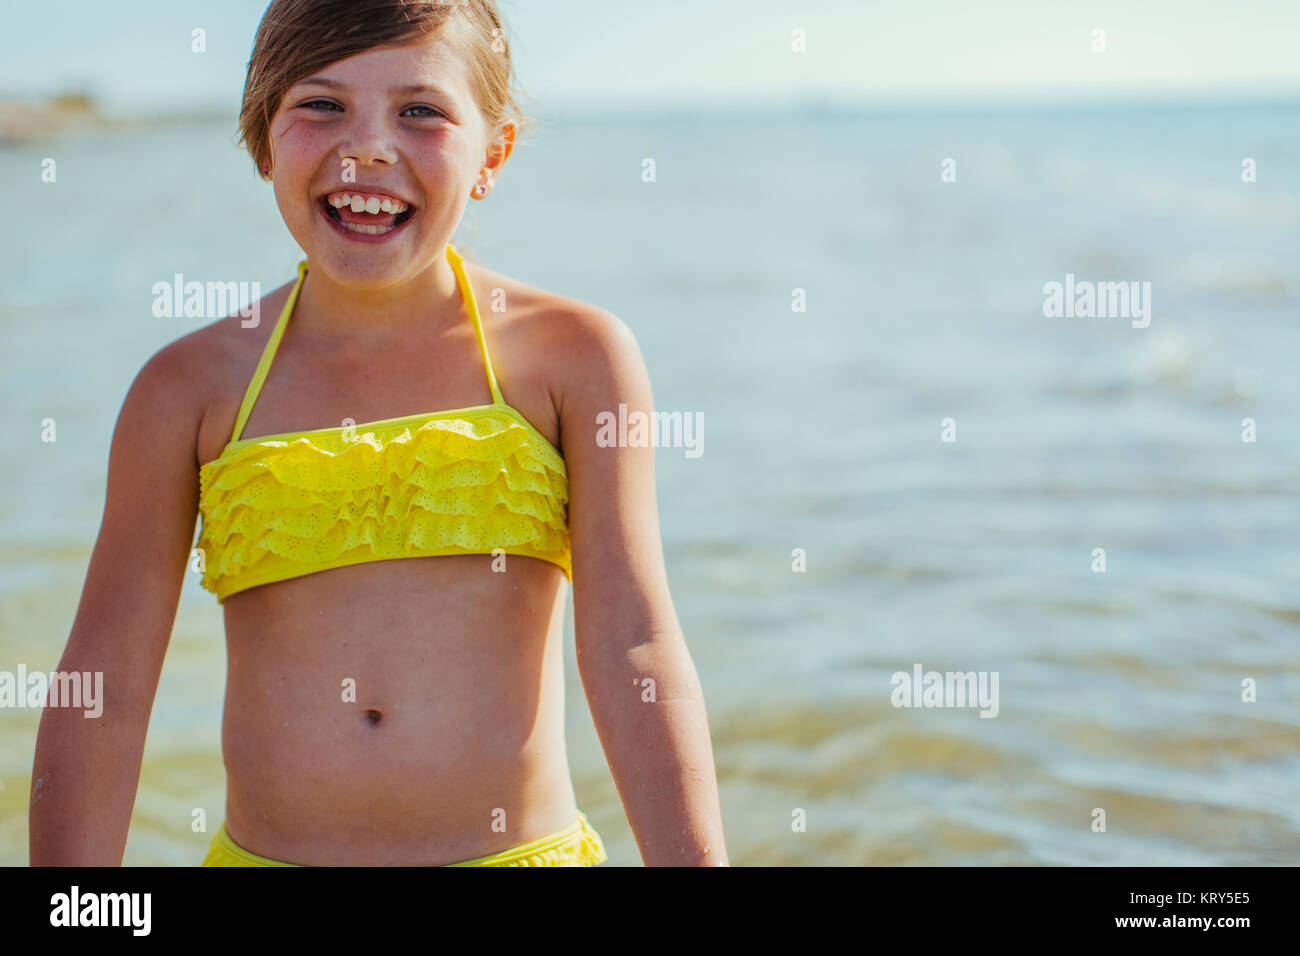 A smiling girl beside the sea - Stock Image